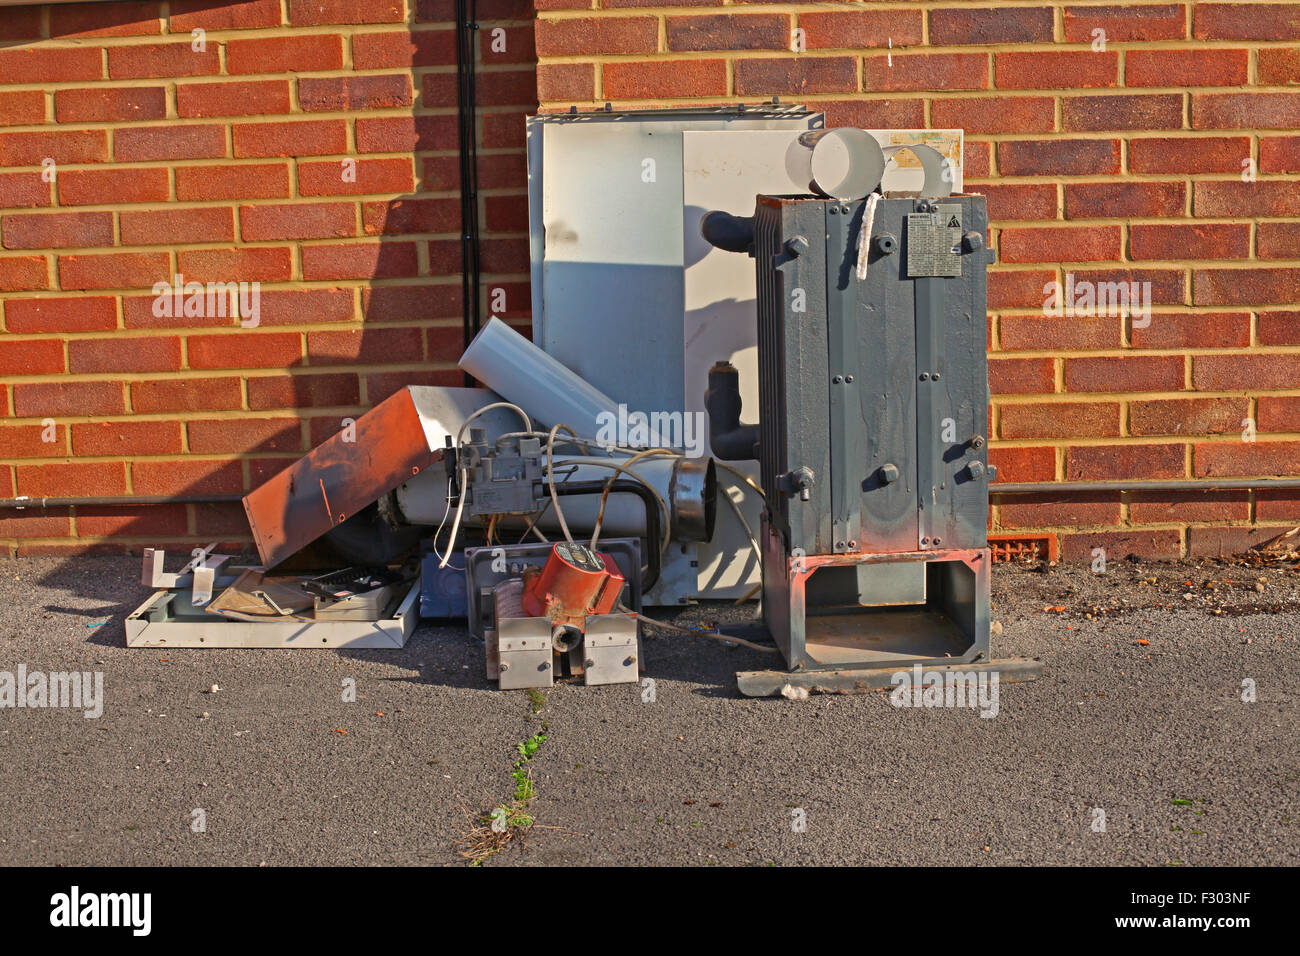 scrap material from a domestic Boiler change including Boiler casing along with a Pump and various parts of Flue - Stock Image